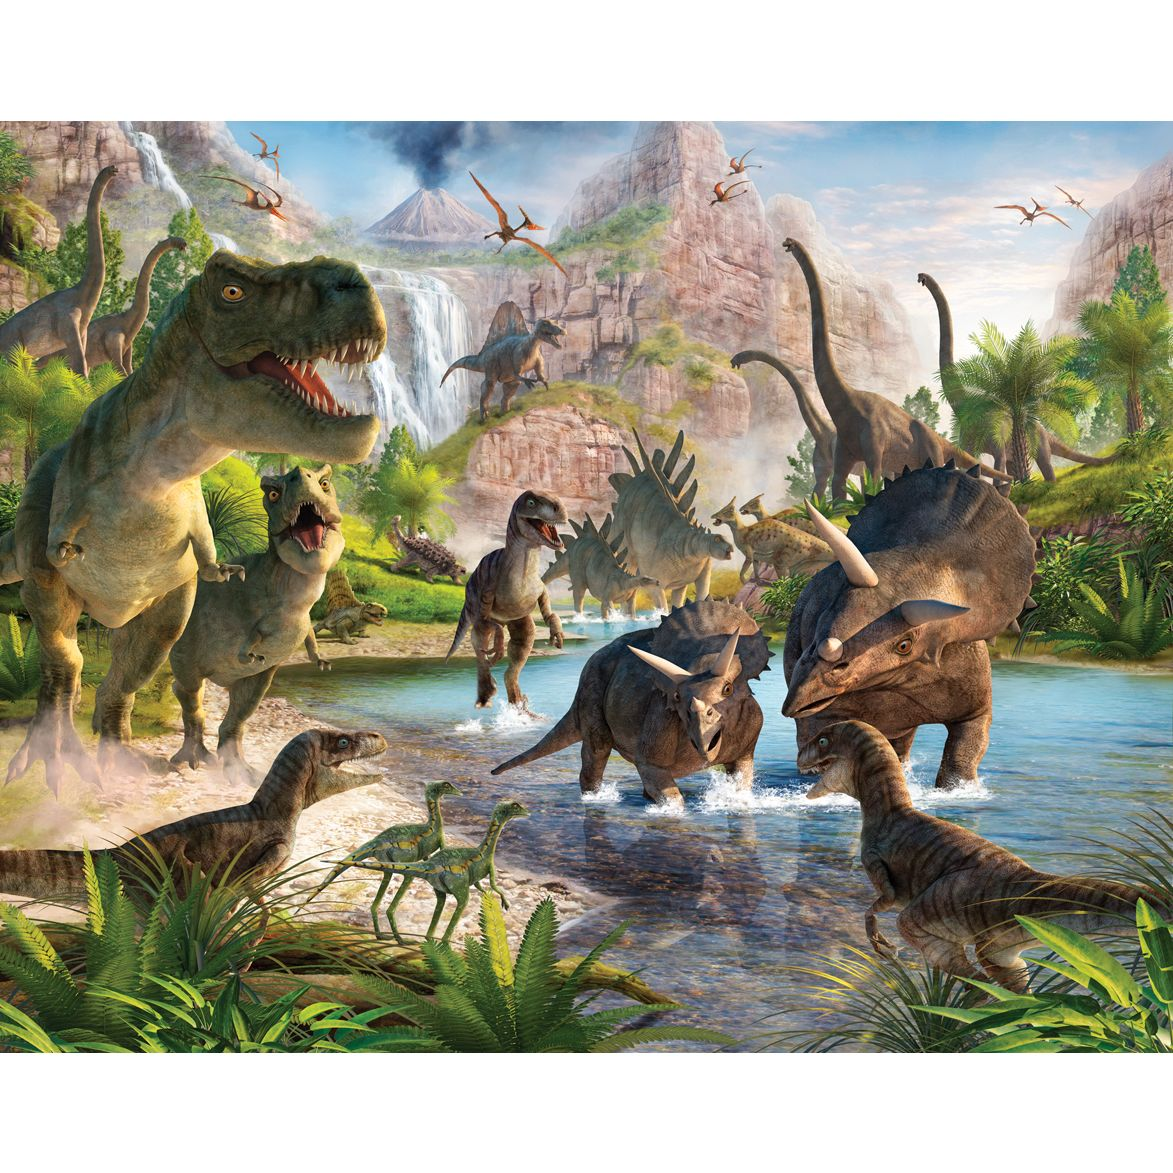 Dinosaur images home walltastic dinosaur land designer for Dinosaur mural ideas